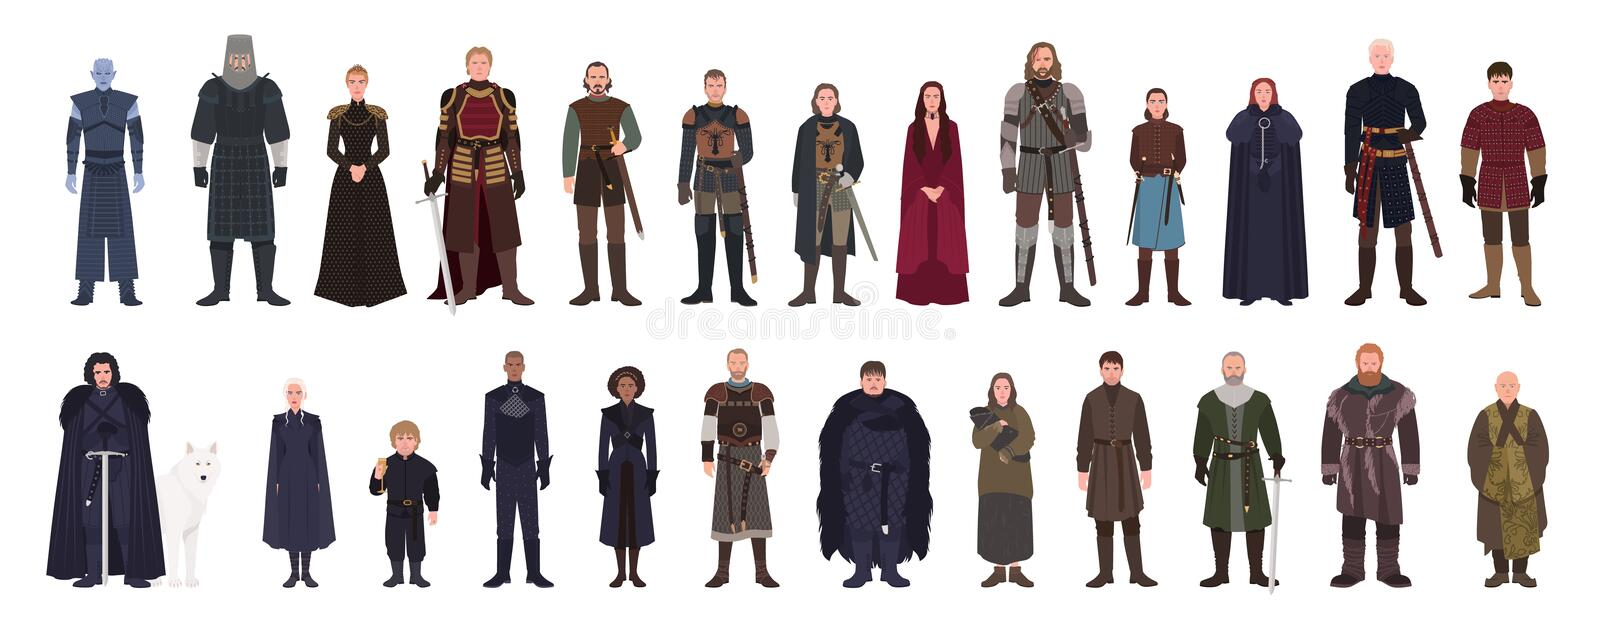 Bundle of Game of Thrones fantasy novel and TV series or television adaptation male and female fictional characters vector illustration